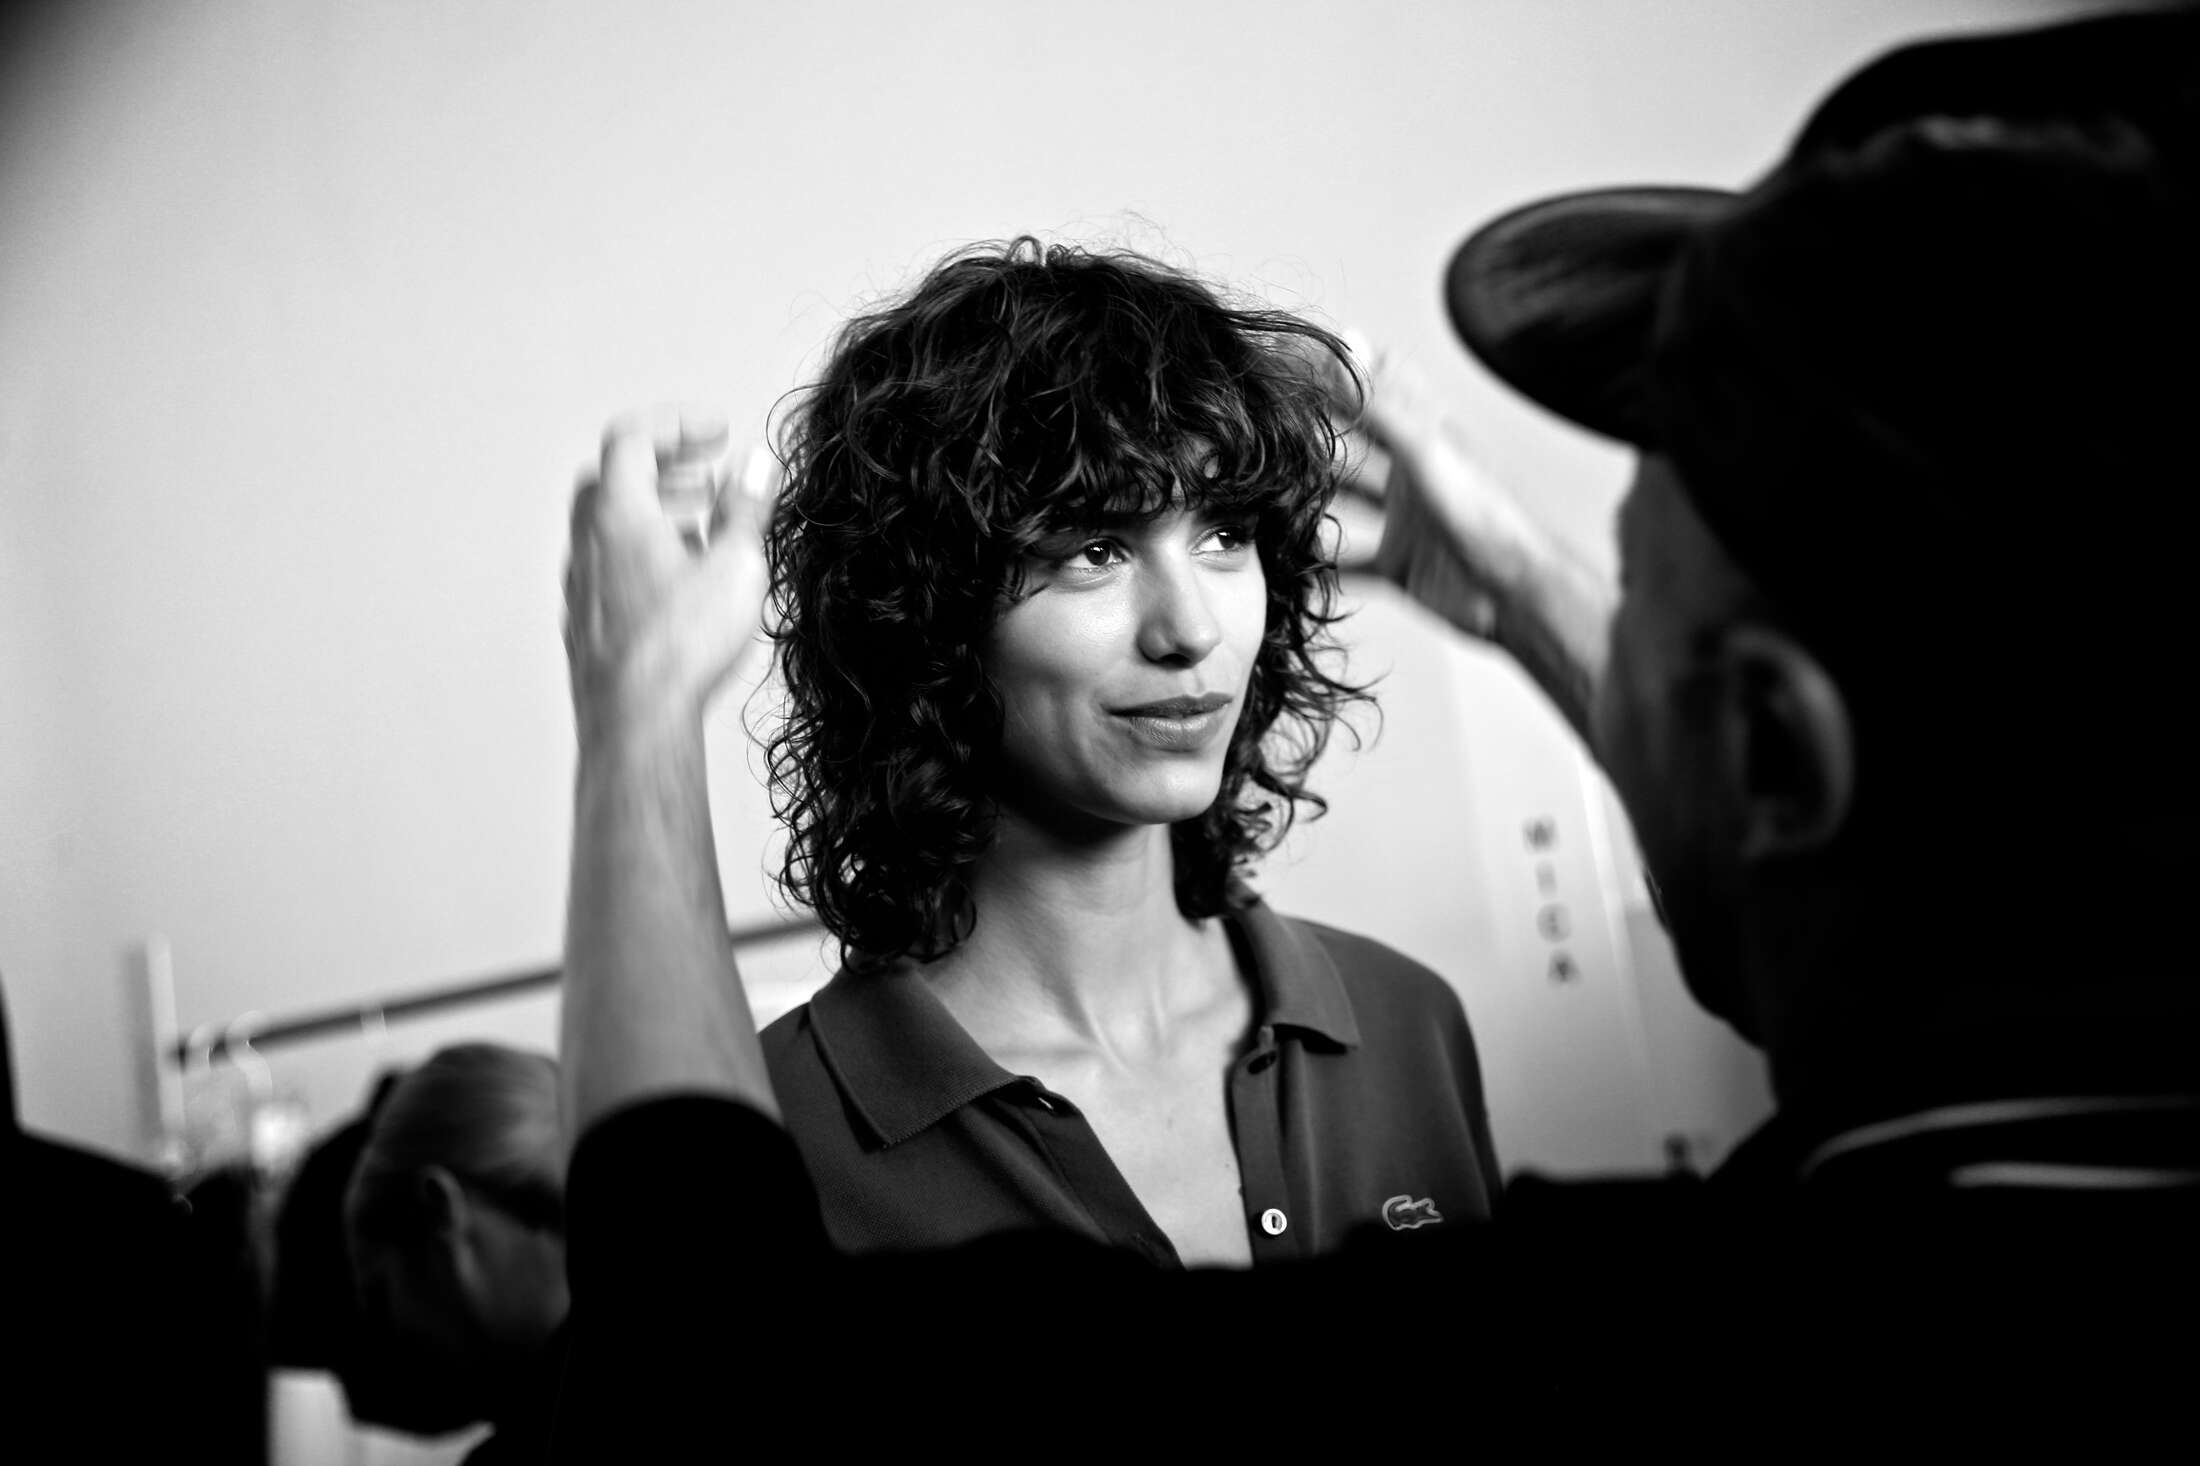 Hairstyle Lacoste Backstage